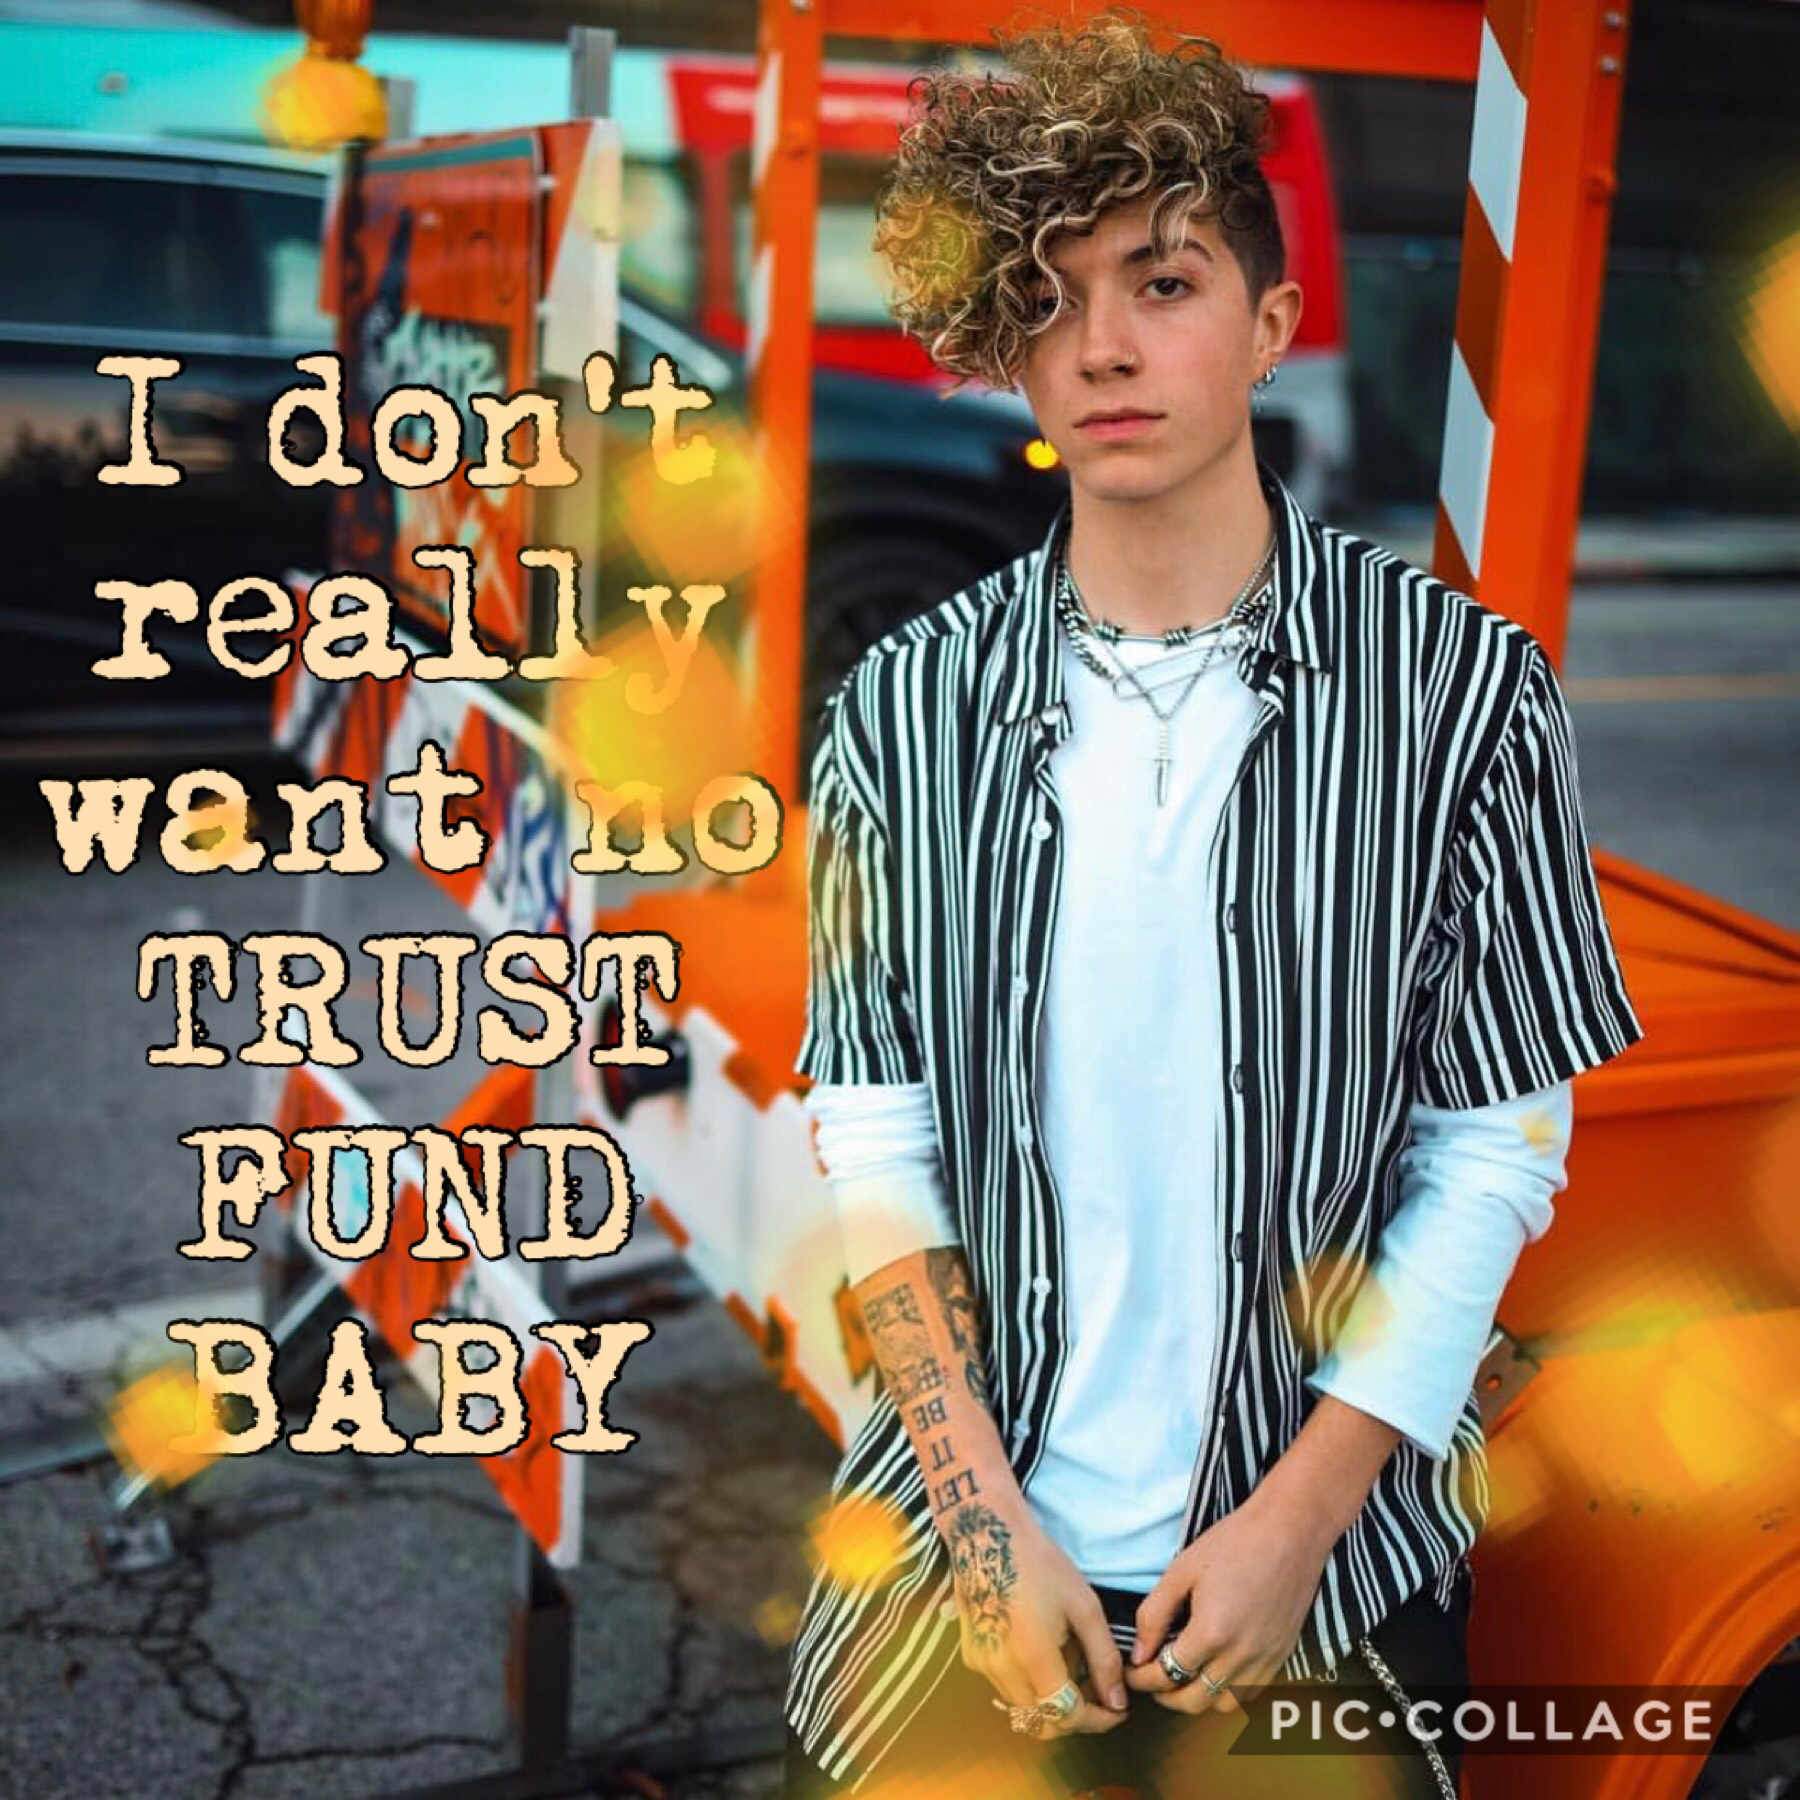 Trust fund baby by why don't we